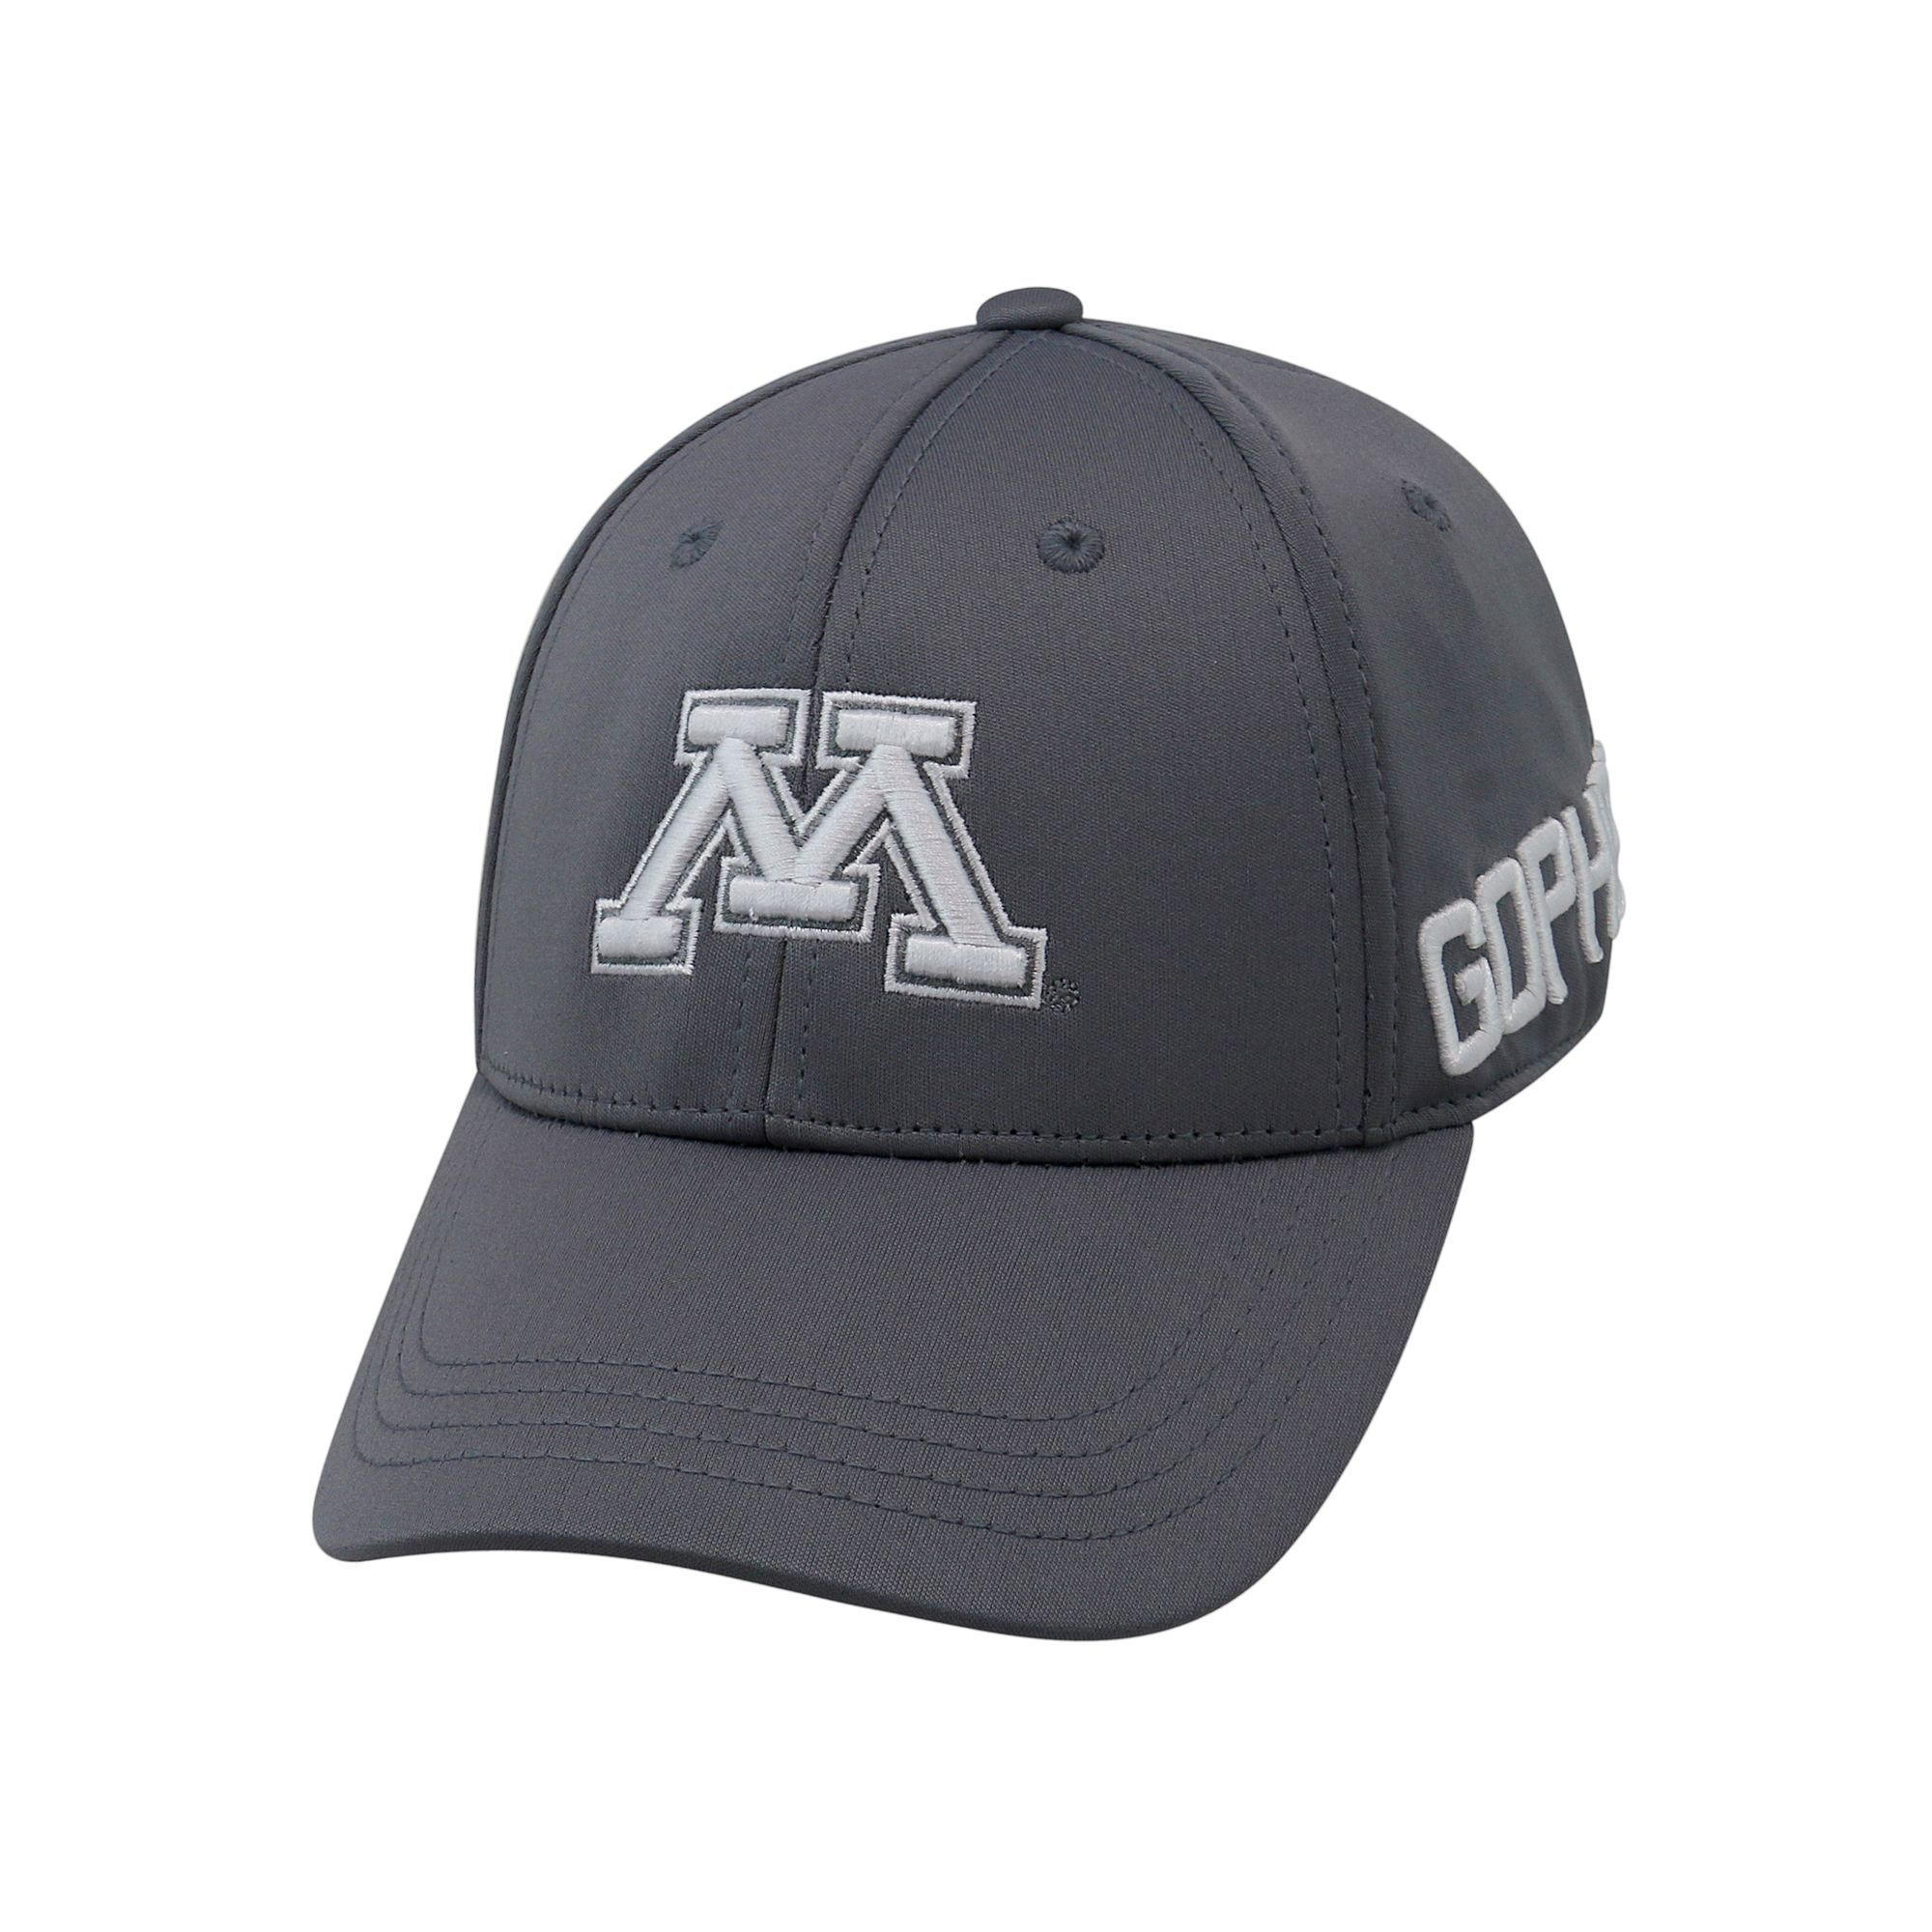 0e84e3b8db5 Youth Top of the World Minnesota Golden Gophers Bolster Mesh Cap, Boy's,  Grey Other